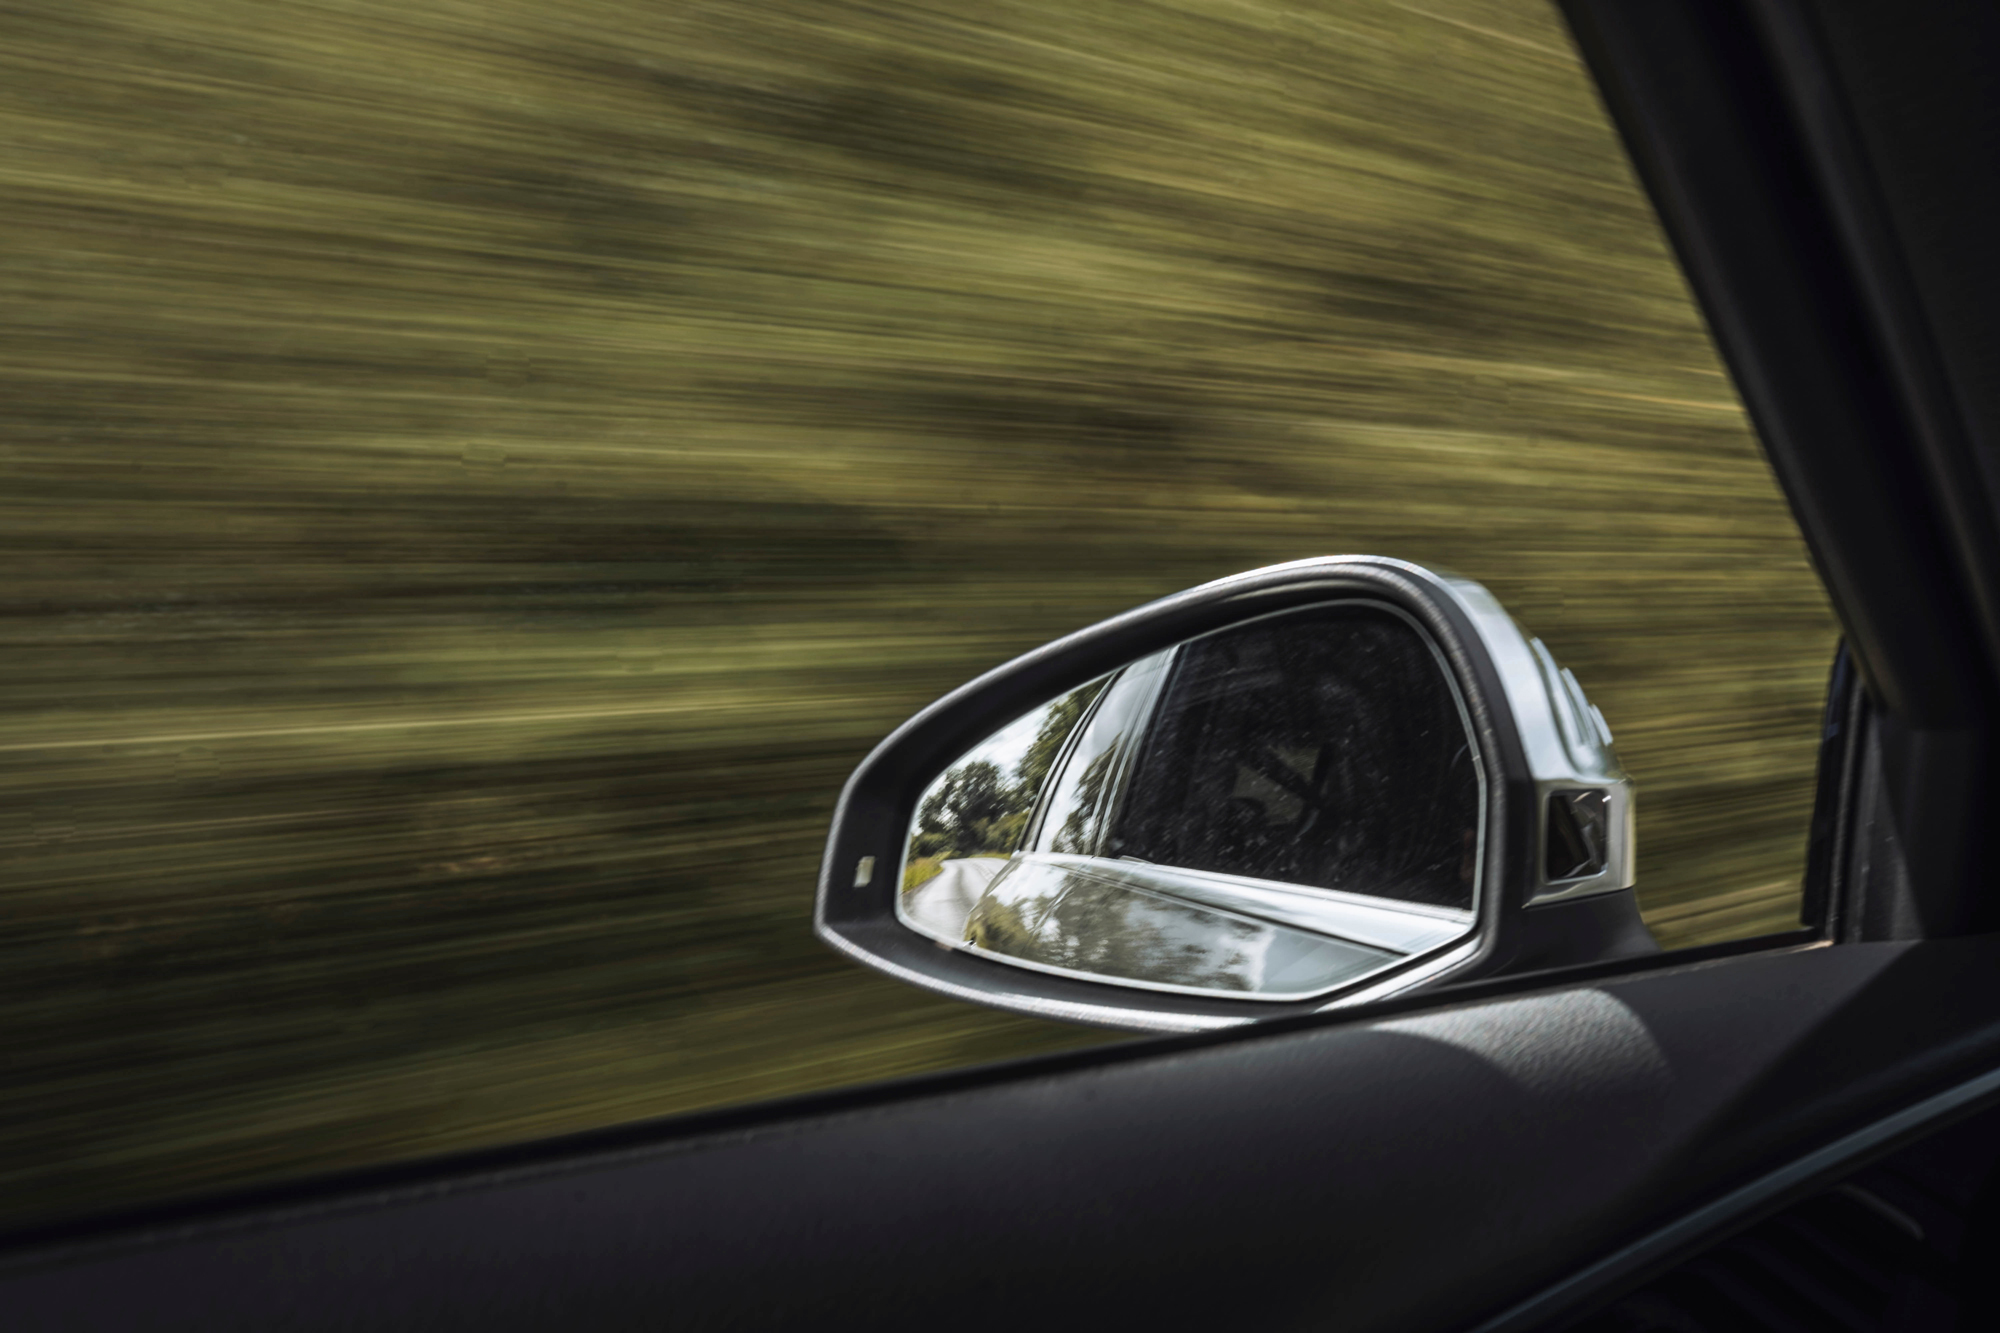 Image of a car with a blurred background from speed